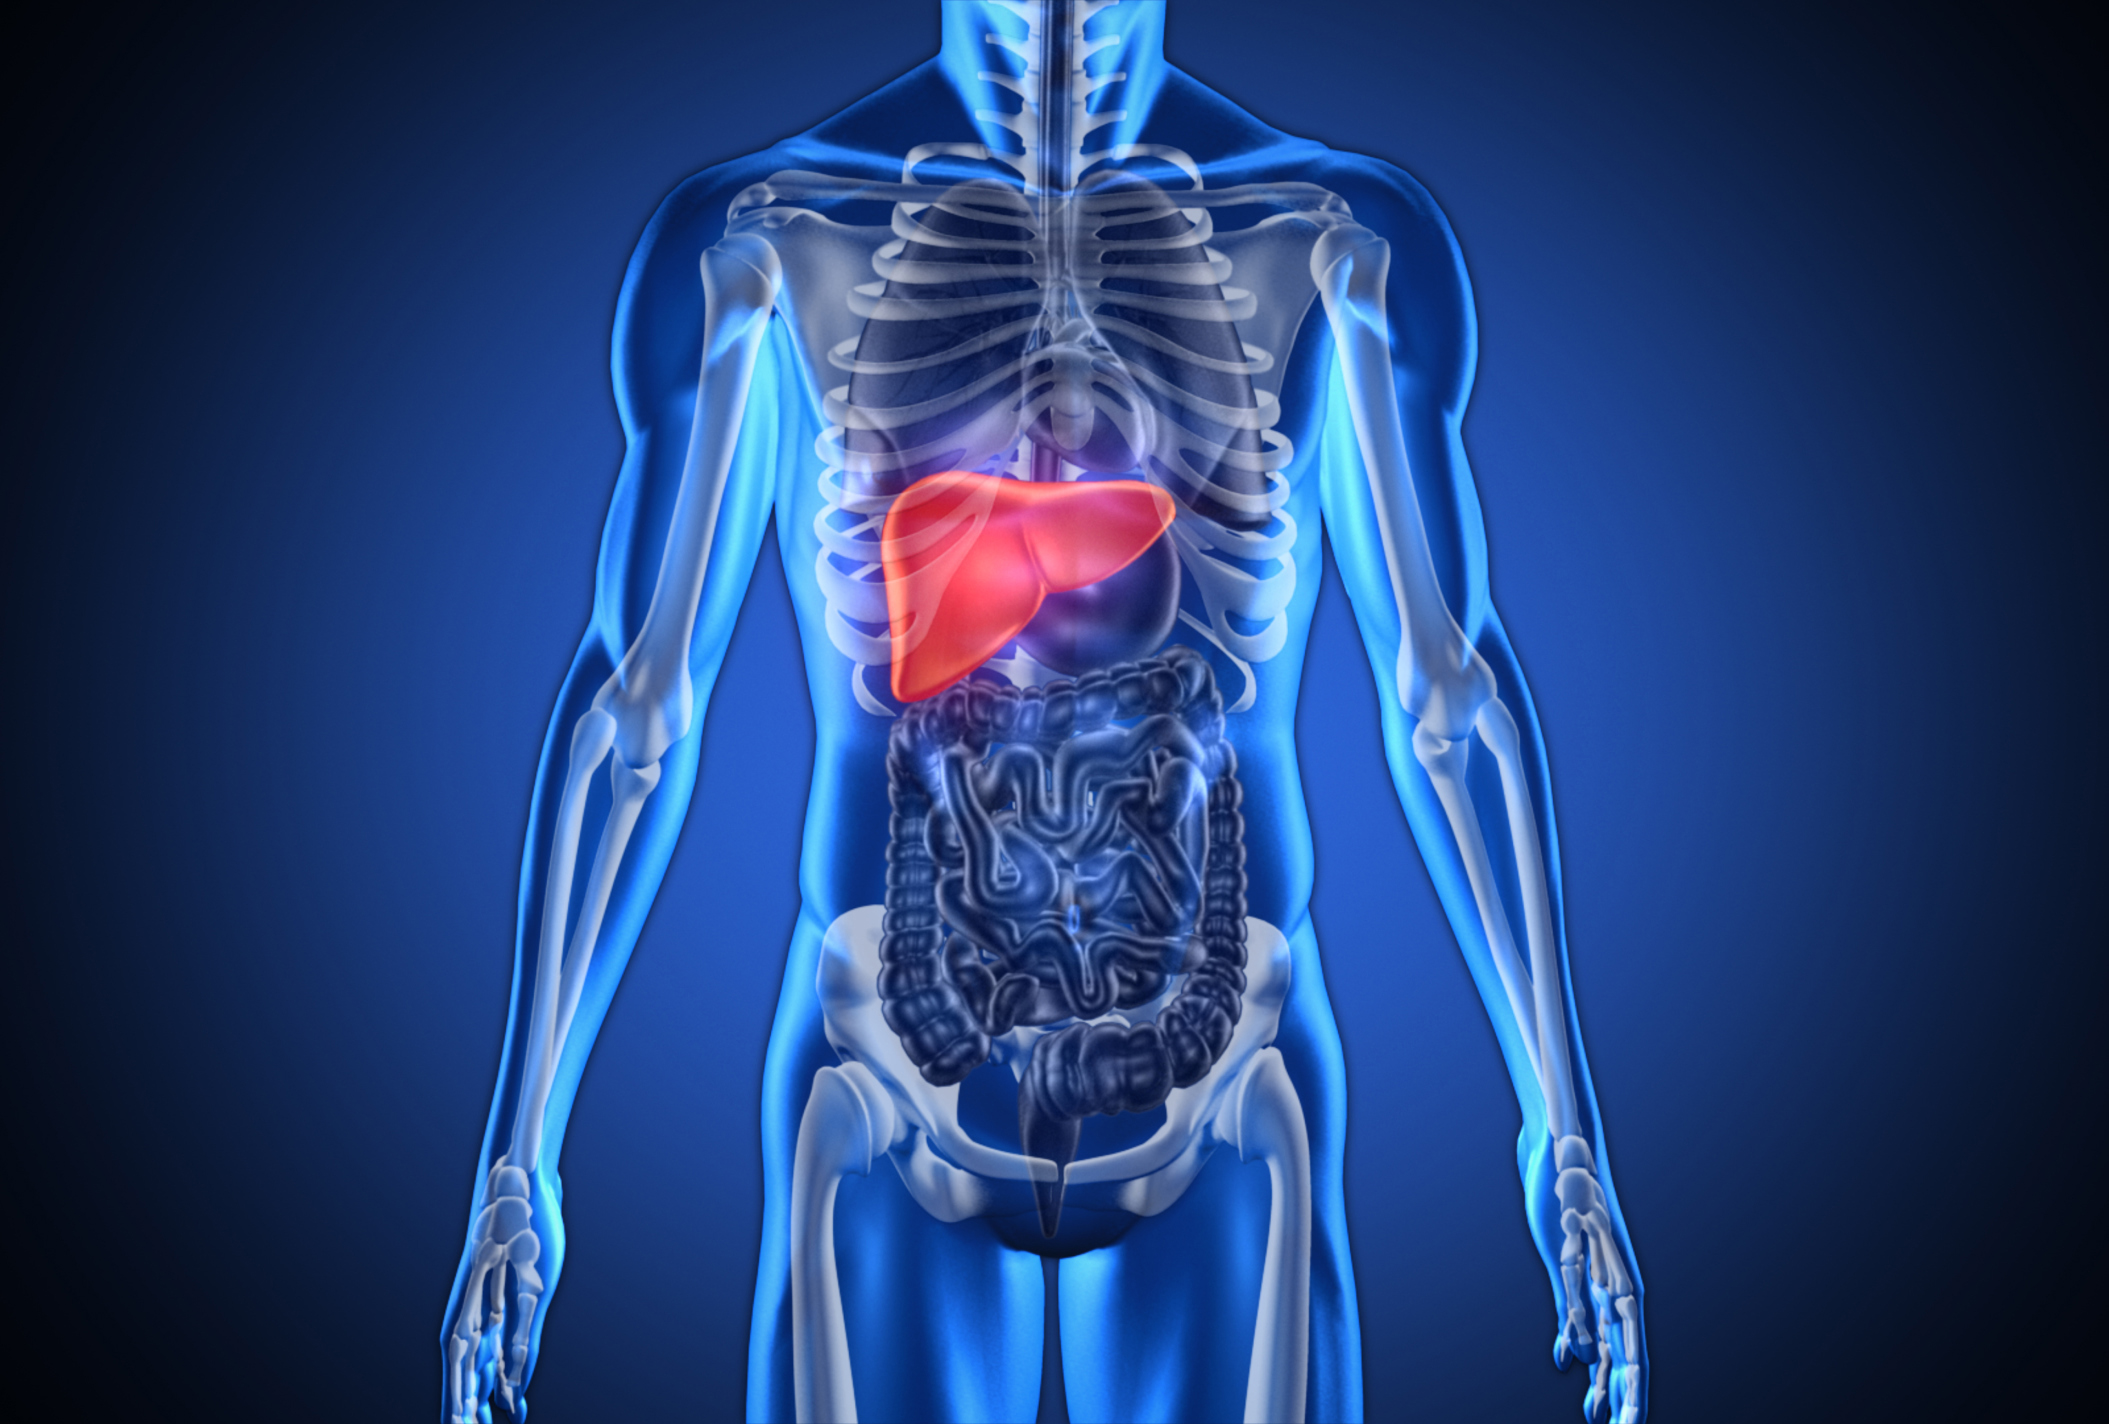 Liver Cancer Pictures Wallpapers